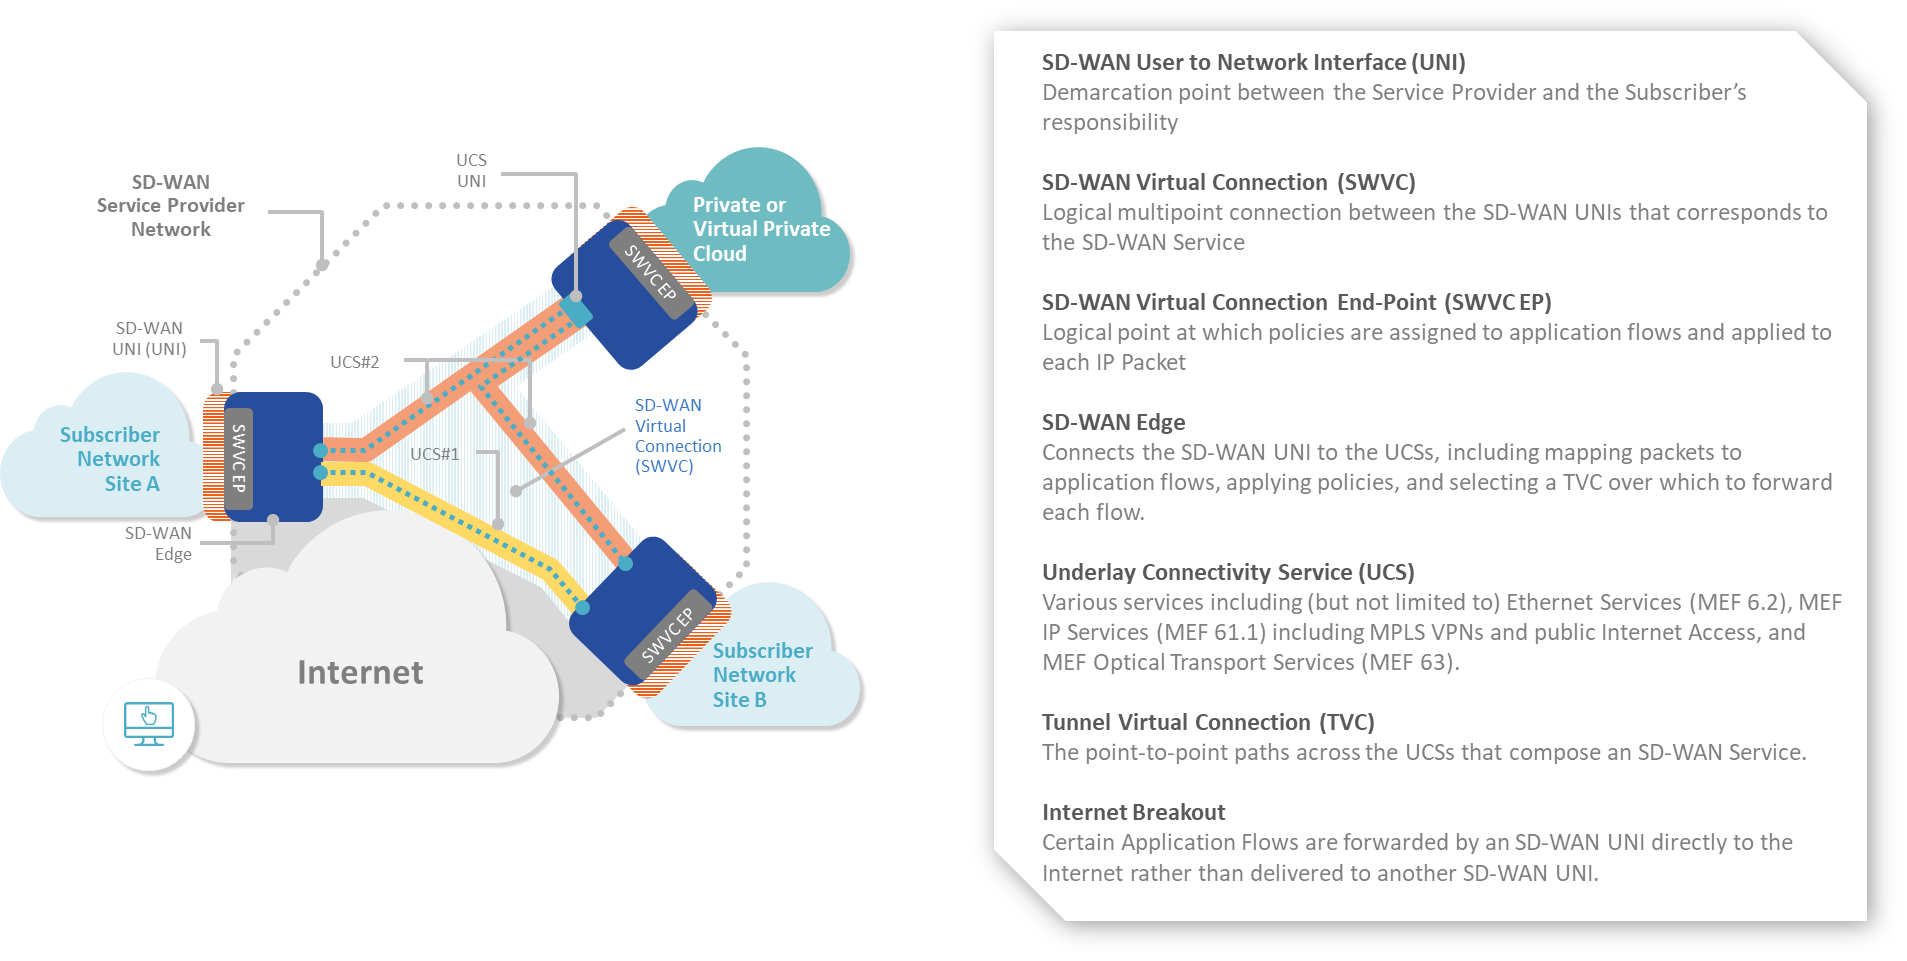 MEF 70 – Components of SD-WAN Service